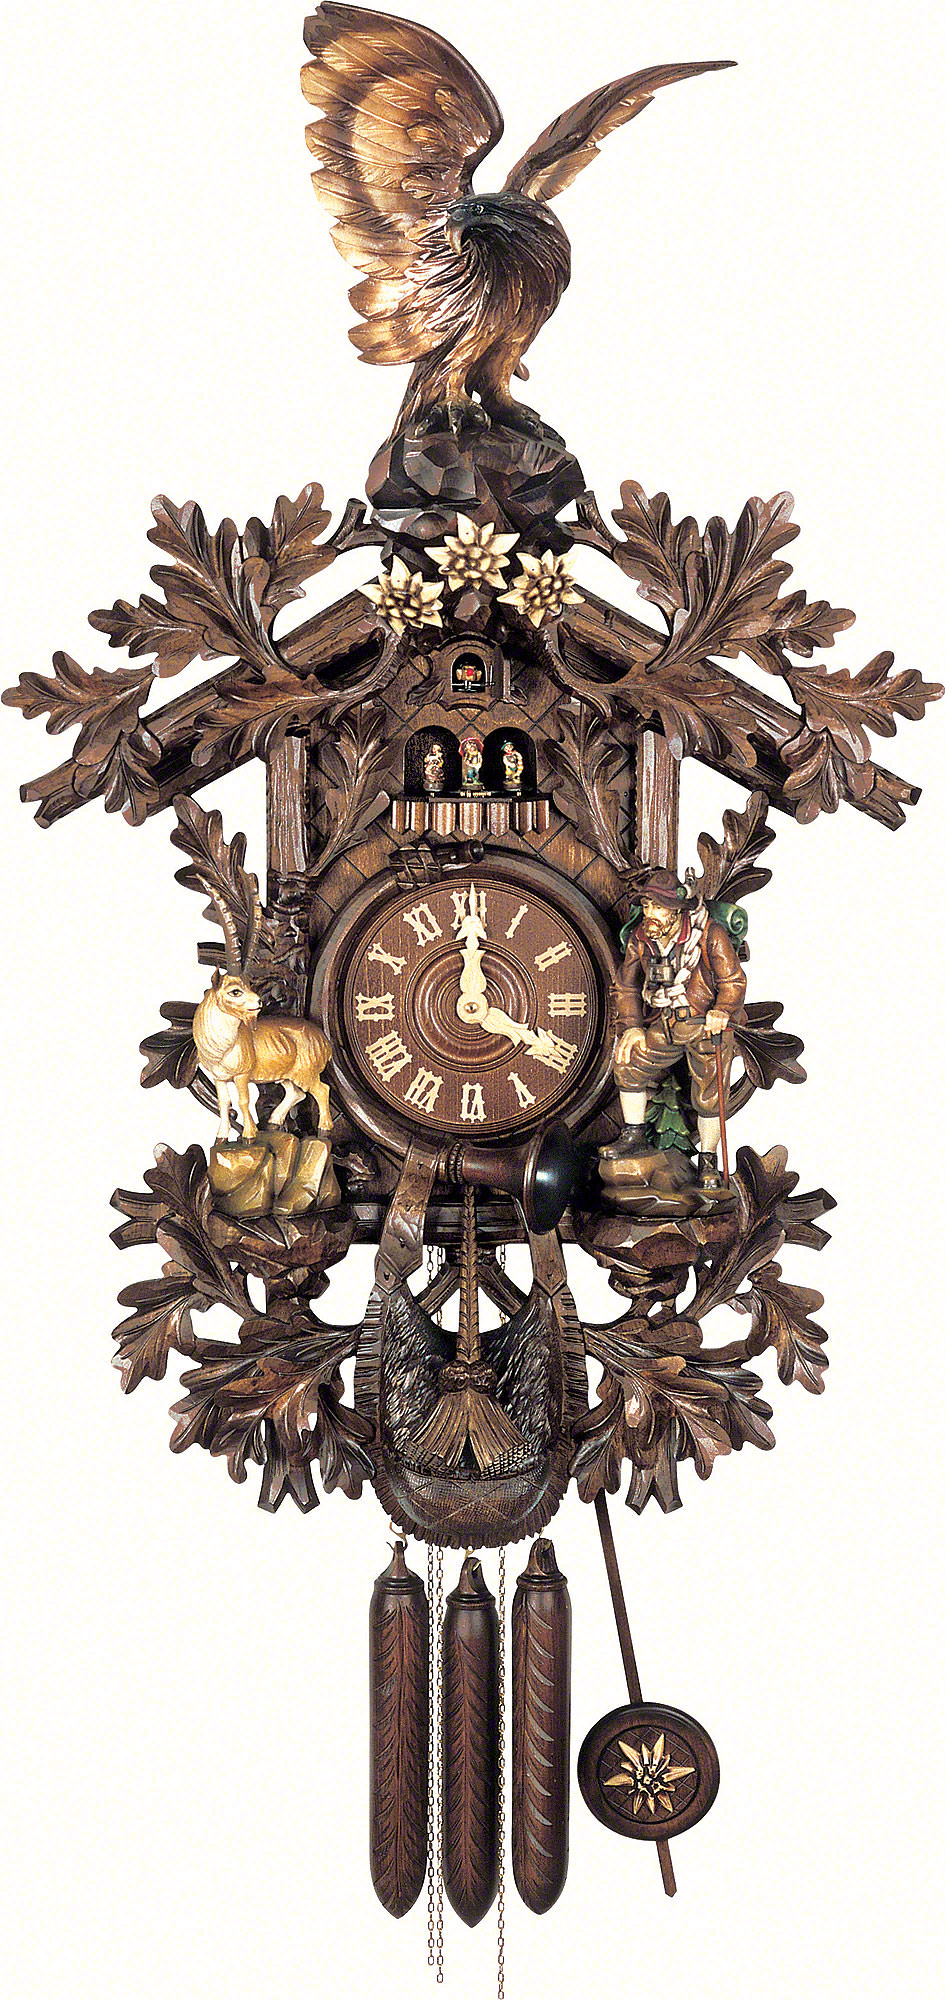 How do you determine the date of an antique cuckoo clock